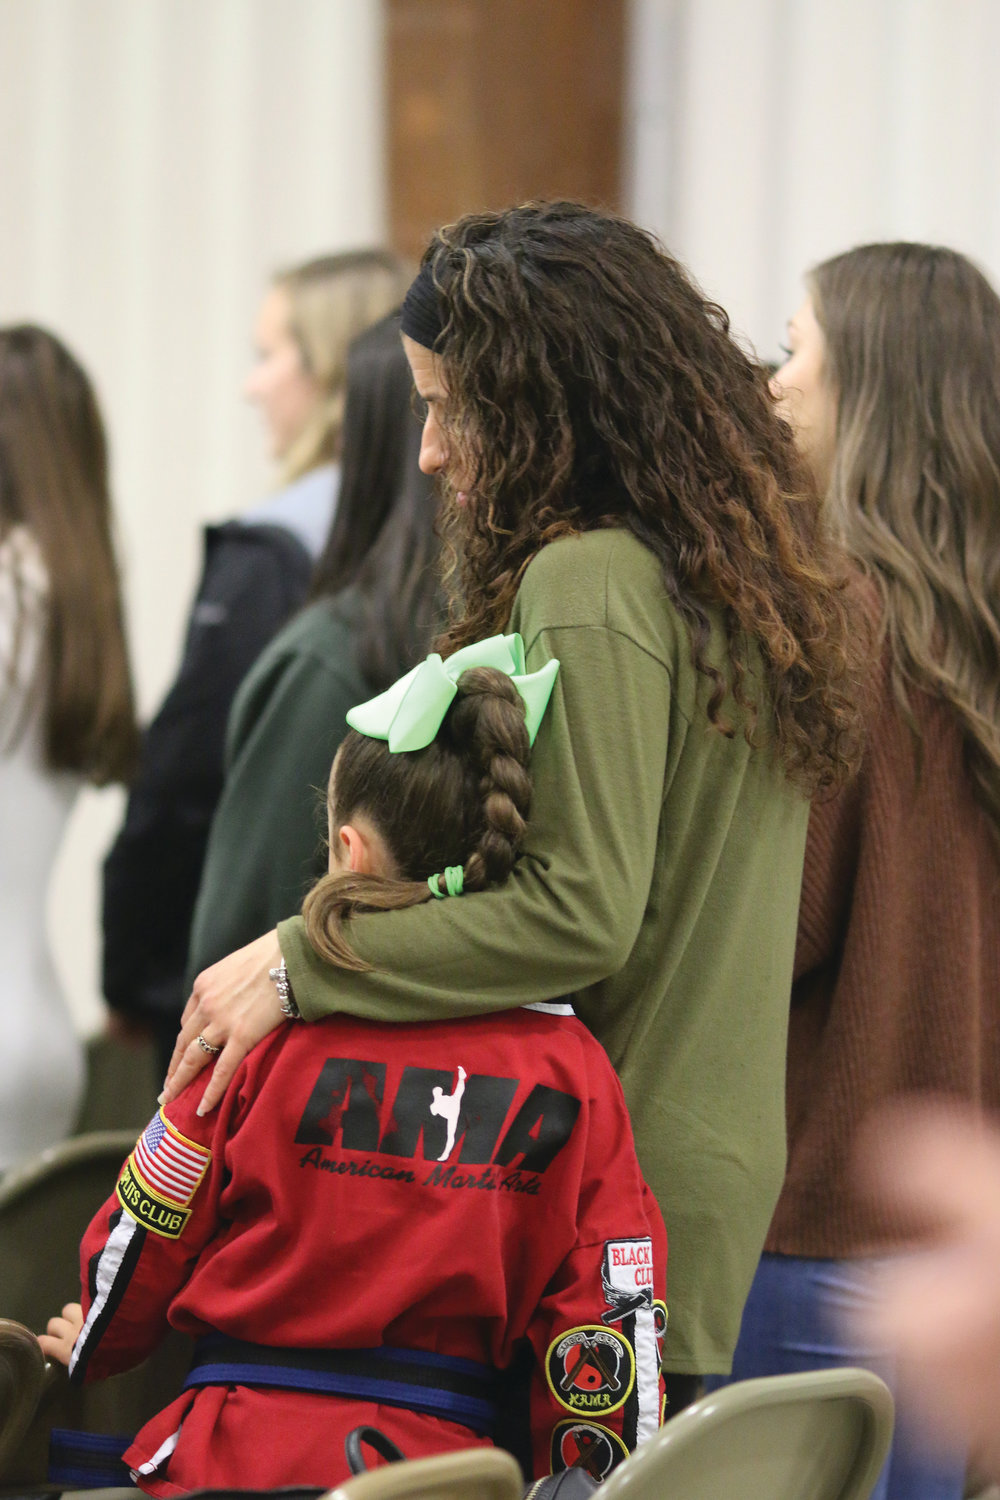 Hundreds fill the parish center at St. Michael Church on Wednesday, Oct. 9, in support of young parishioner Noah Antunes who was recently diagnosed with cancer at the beginning of the month.